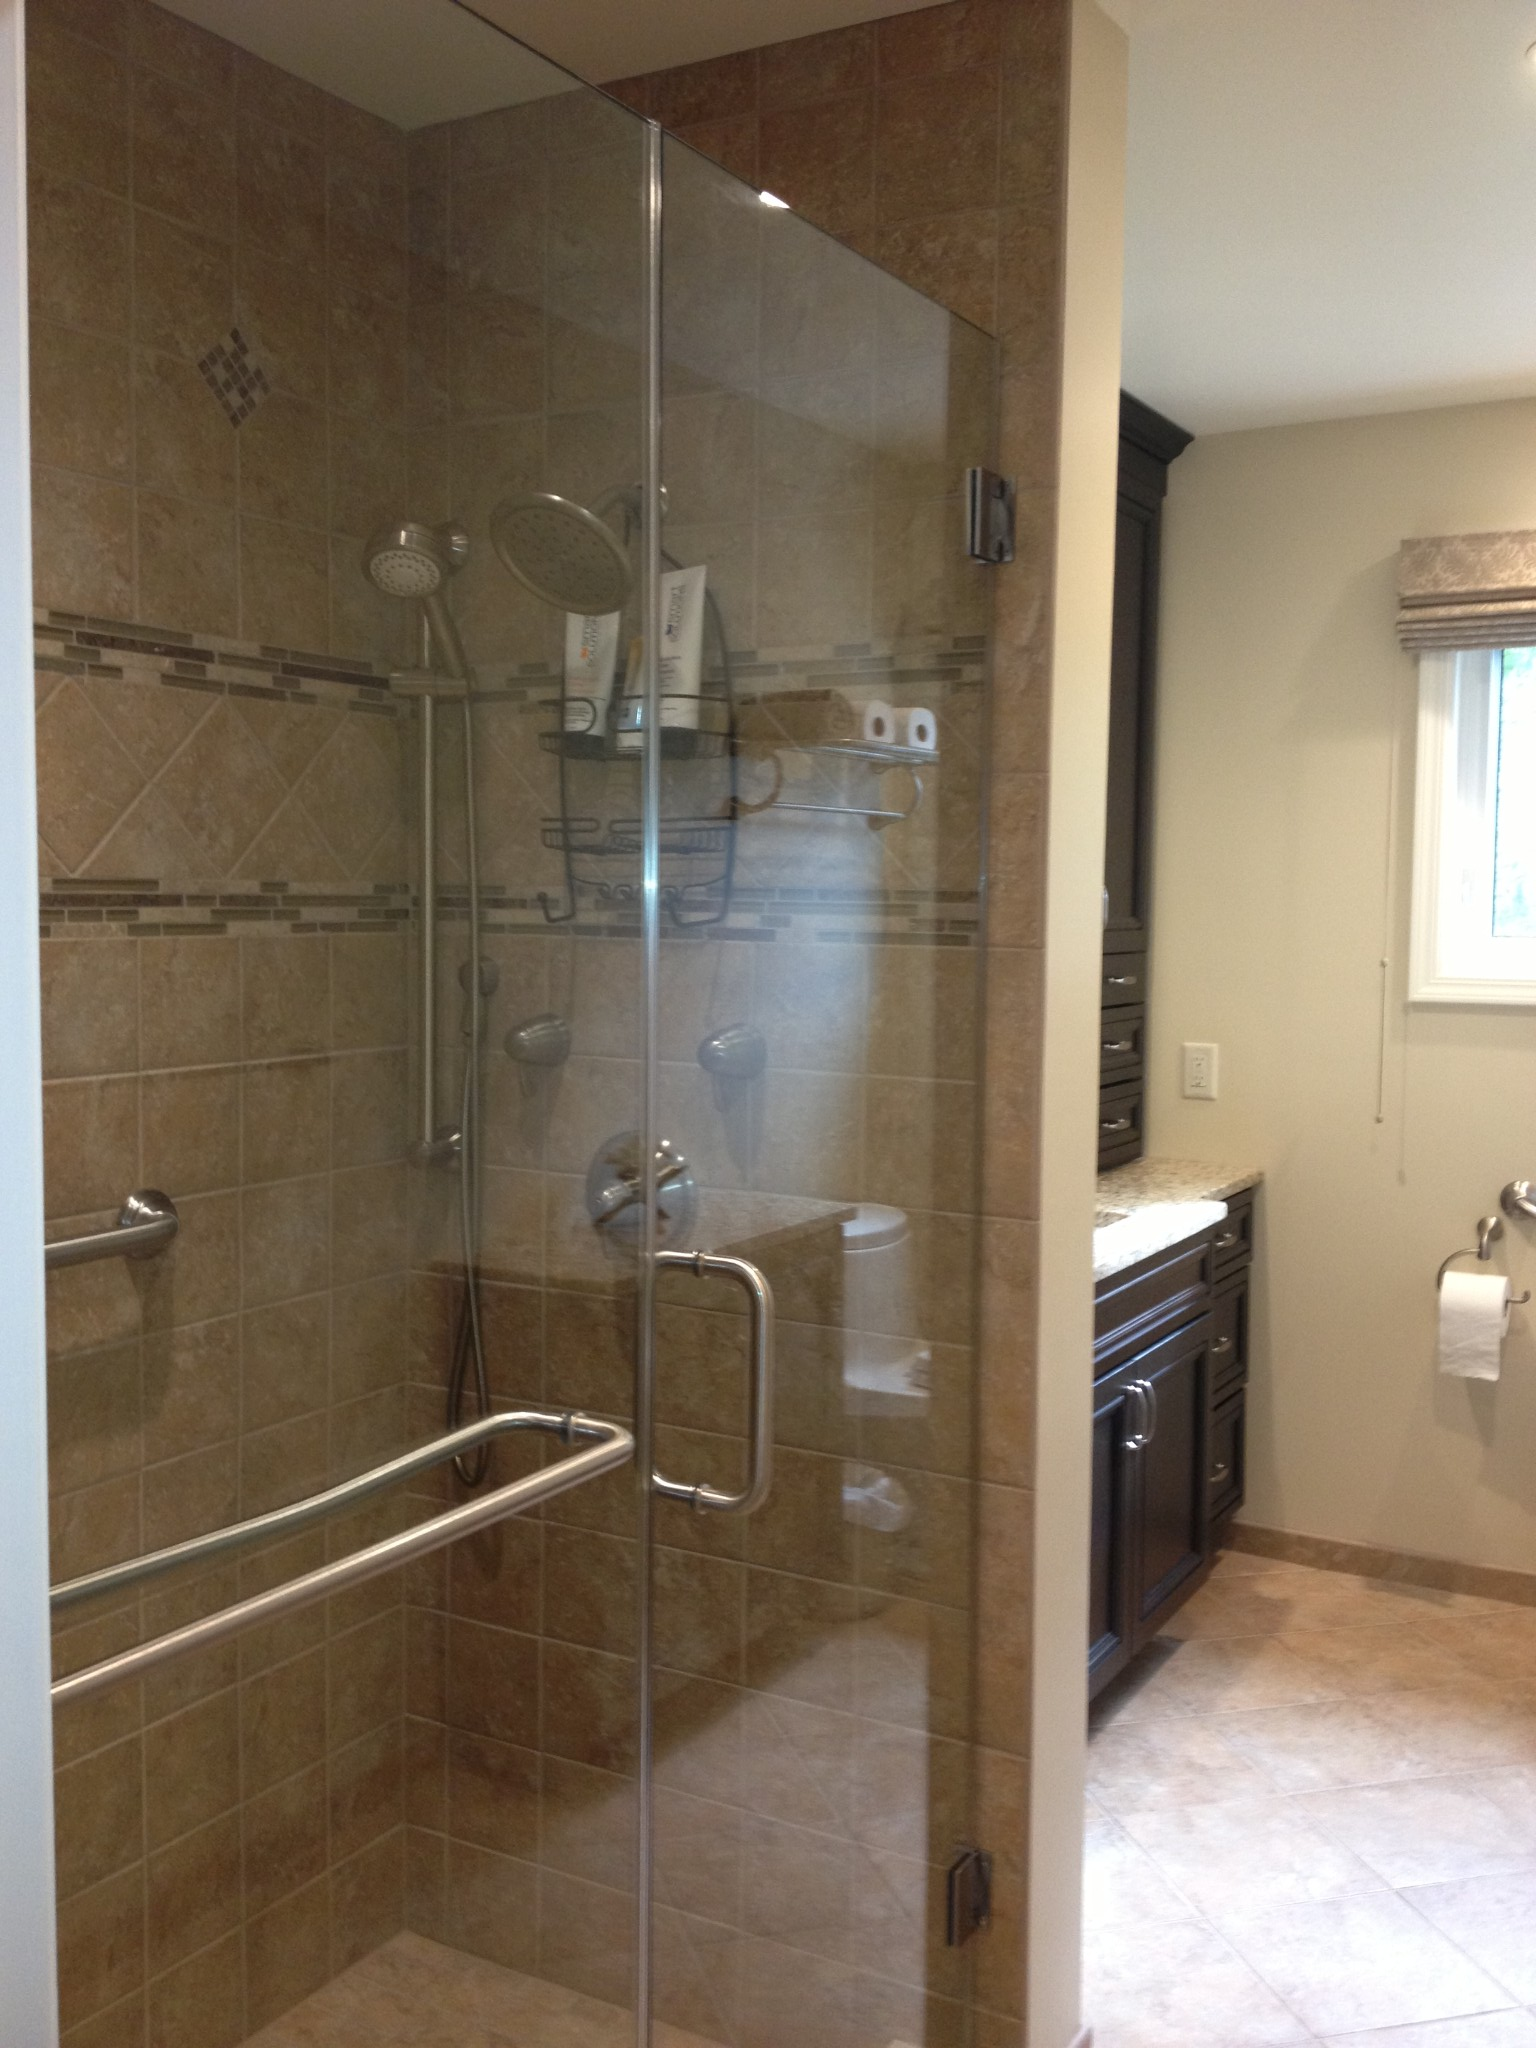 Remodeling Project Ideas From Kuhn Construction In Ny